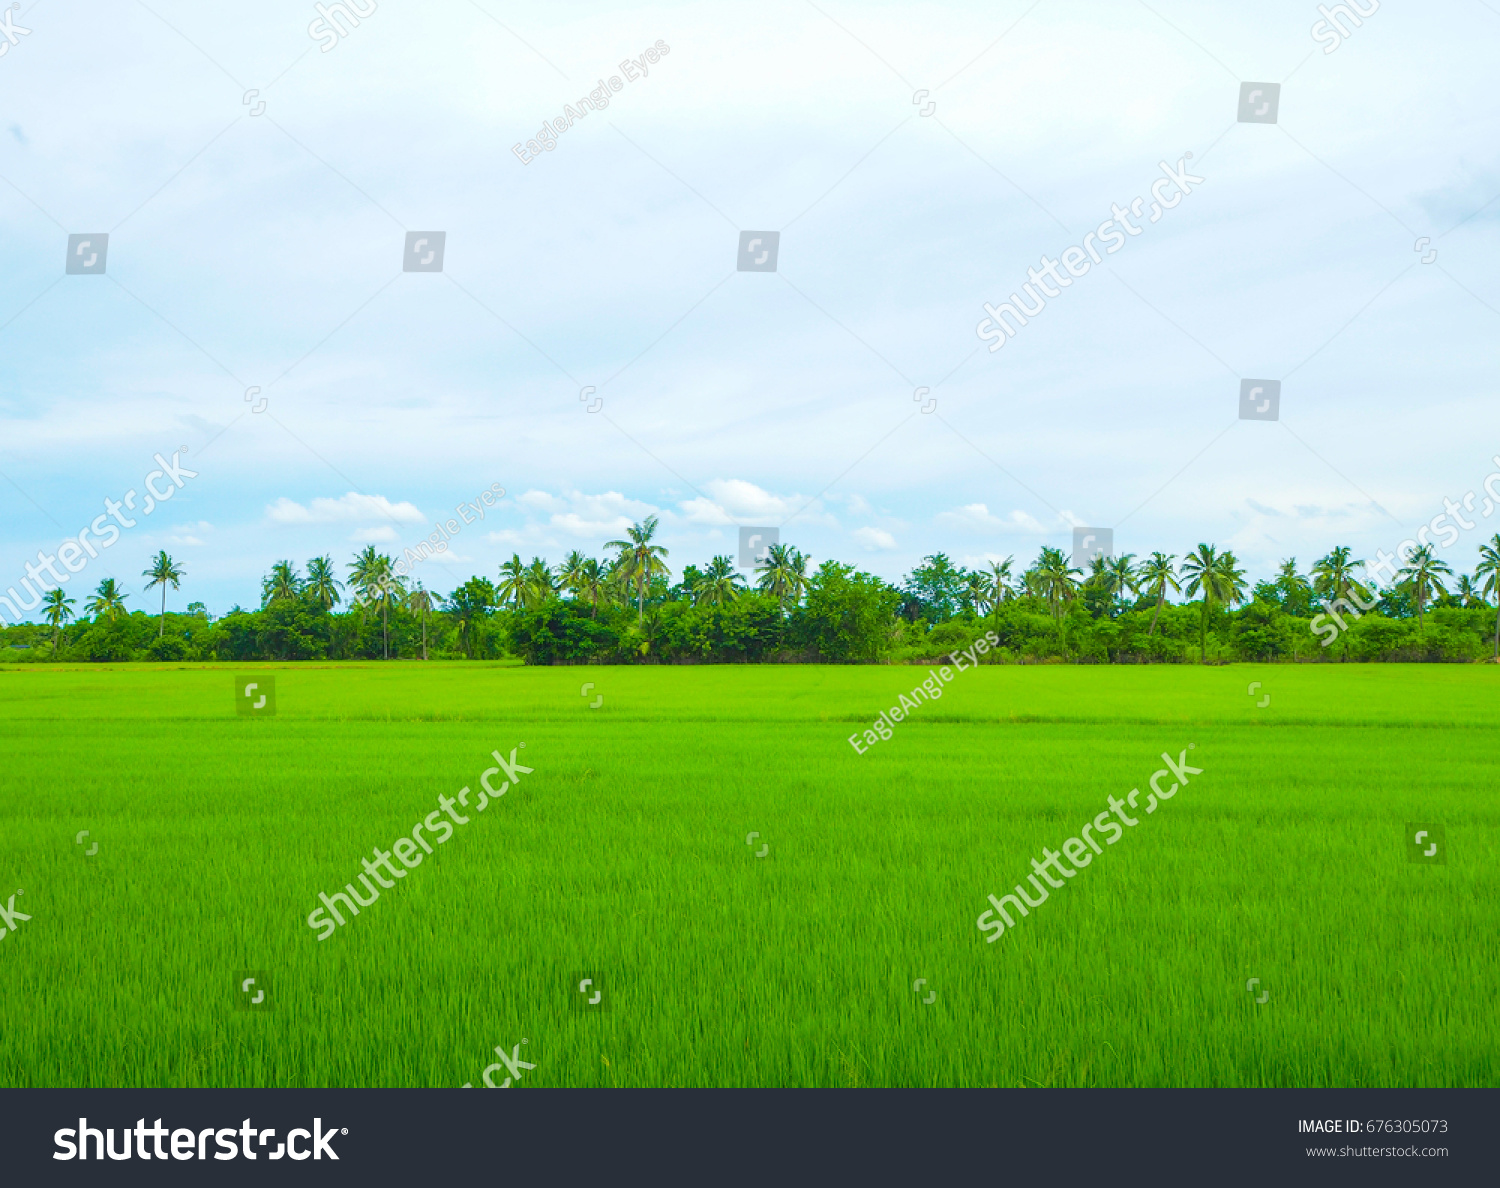 rice field nature background green field stock photo (download now